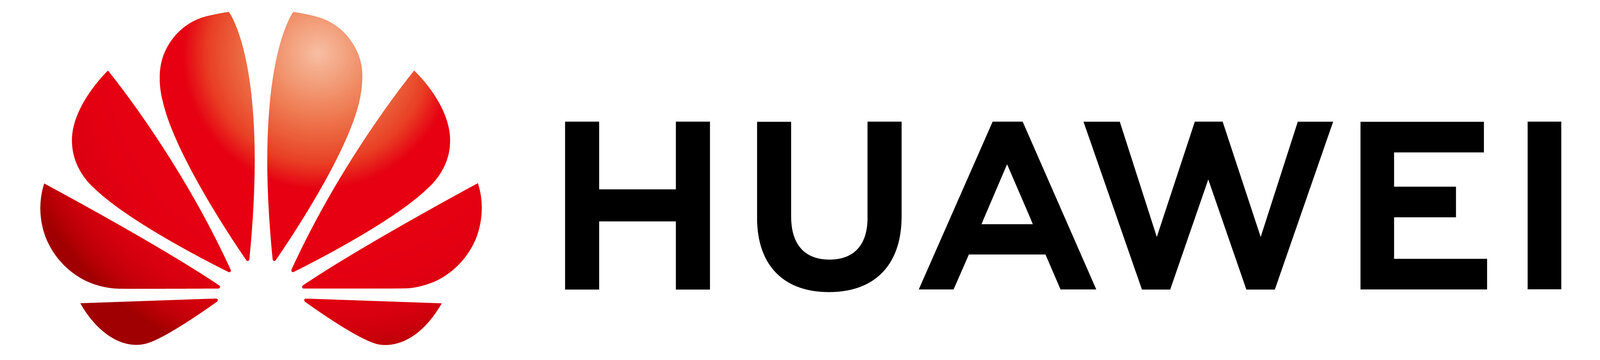 横版华为公司标志 Horizontal Version of Huawei Corporate Logo_2018